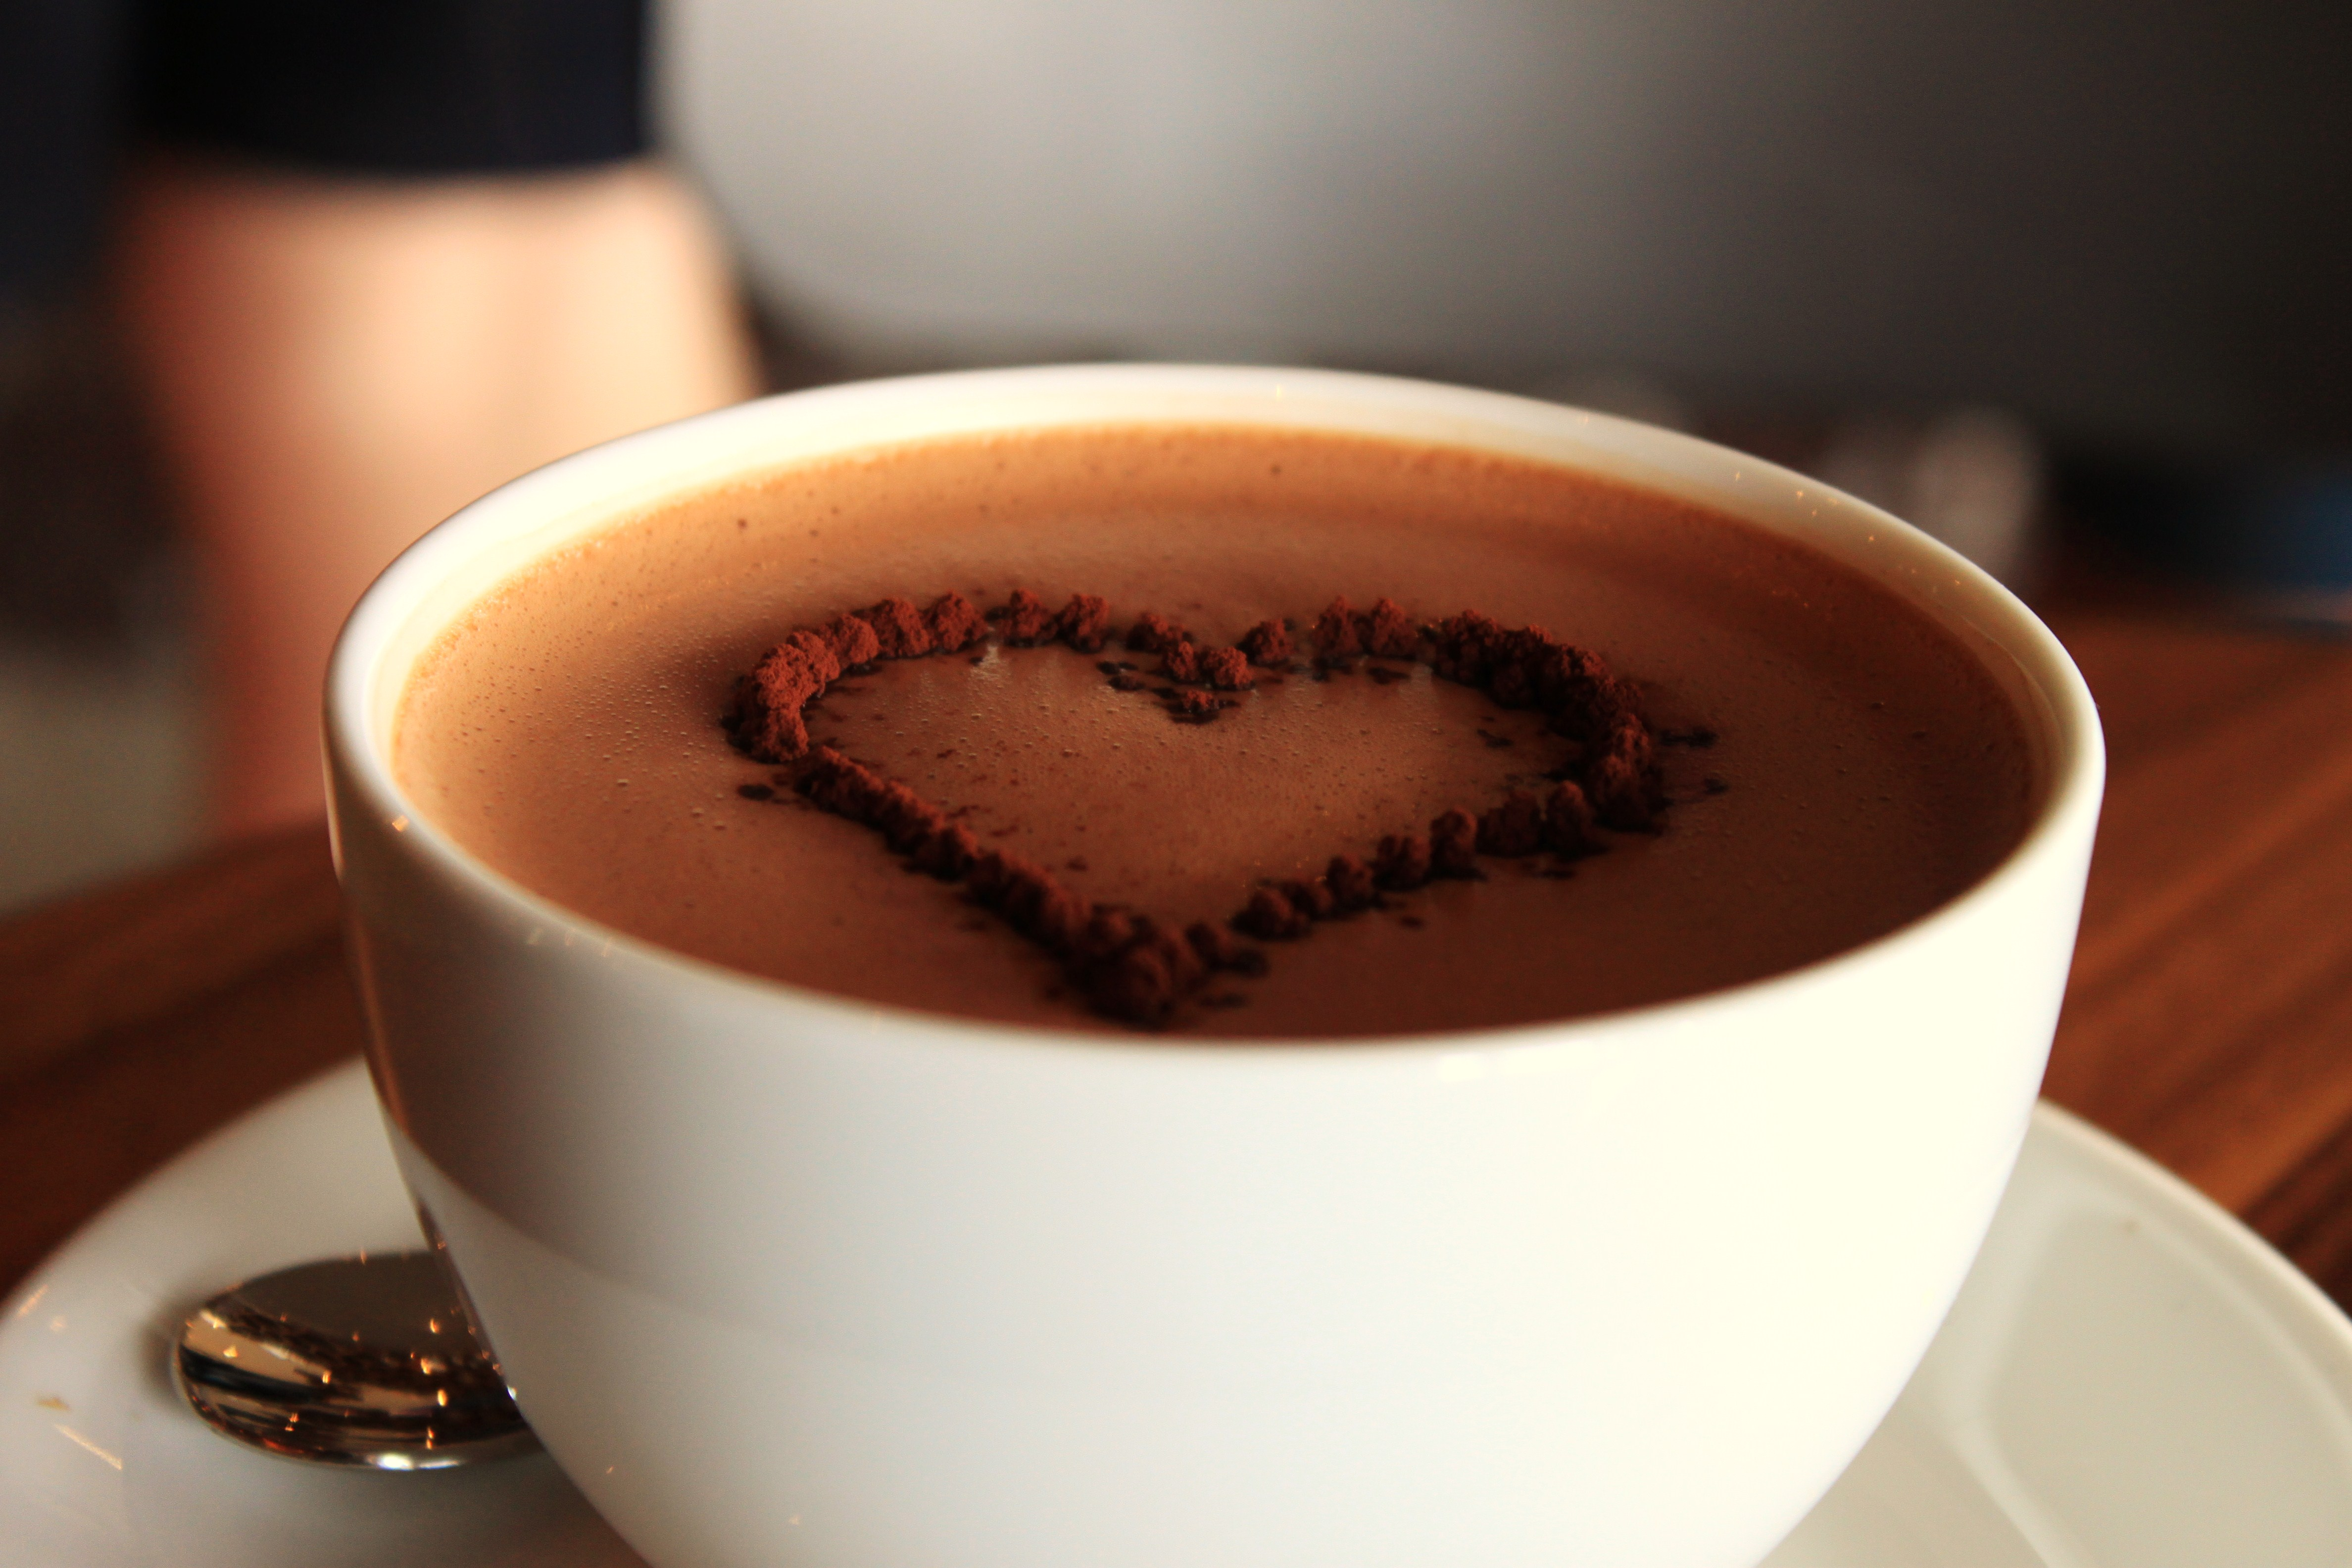 Spicy chocolademelk: for the looooove …